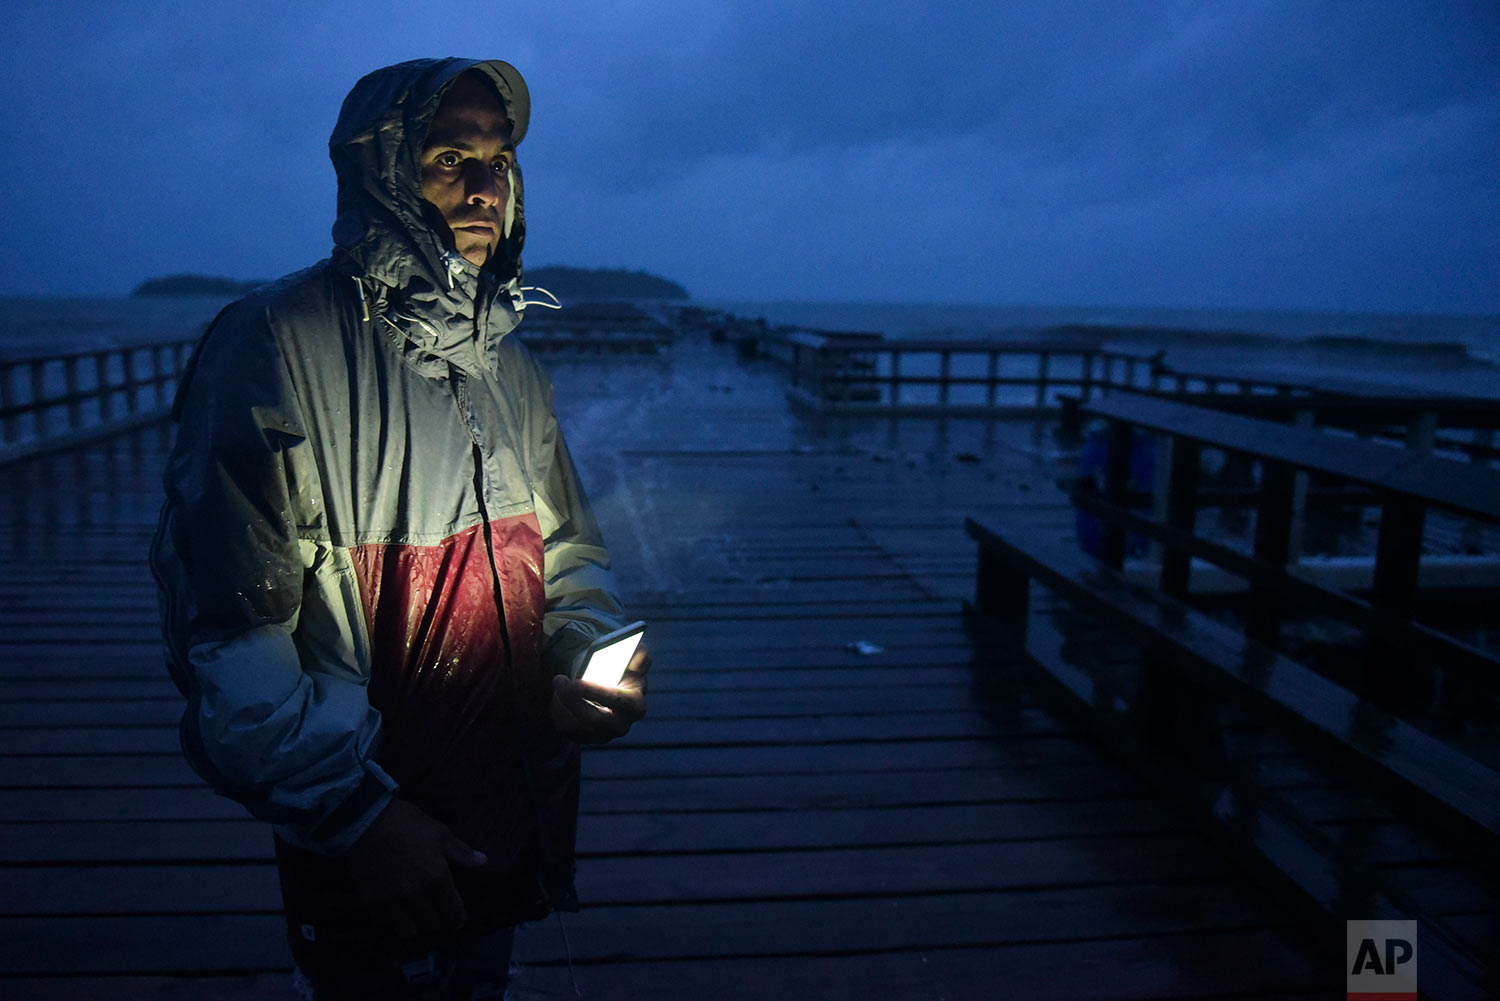 David Cruz Marrero watches the waves at Punta Santiago pier hours before the imminent impact of Maria, a Category 5 hurricane that threatens to hit the eastern region of the island with sustained winds of 165 miles per hour, in Humacao, Puerto Rico, Tuesday, September 19, 2017. (AP Photo/Carlos Giusti)